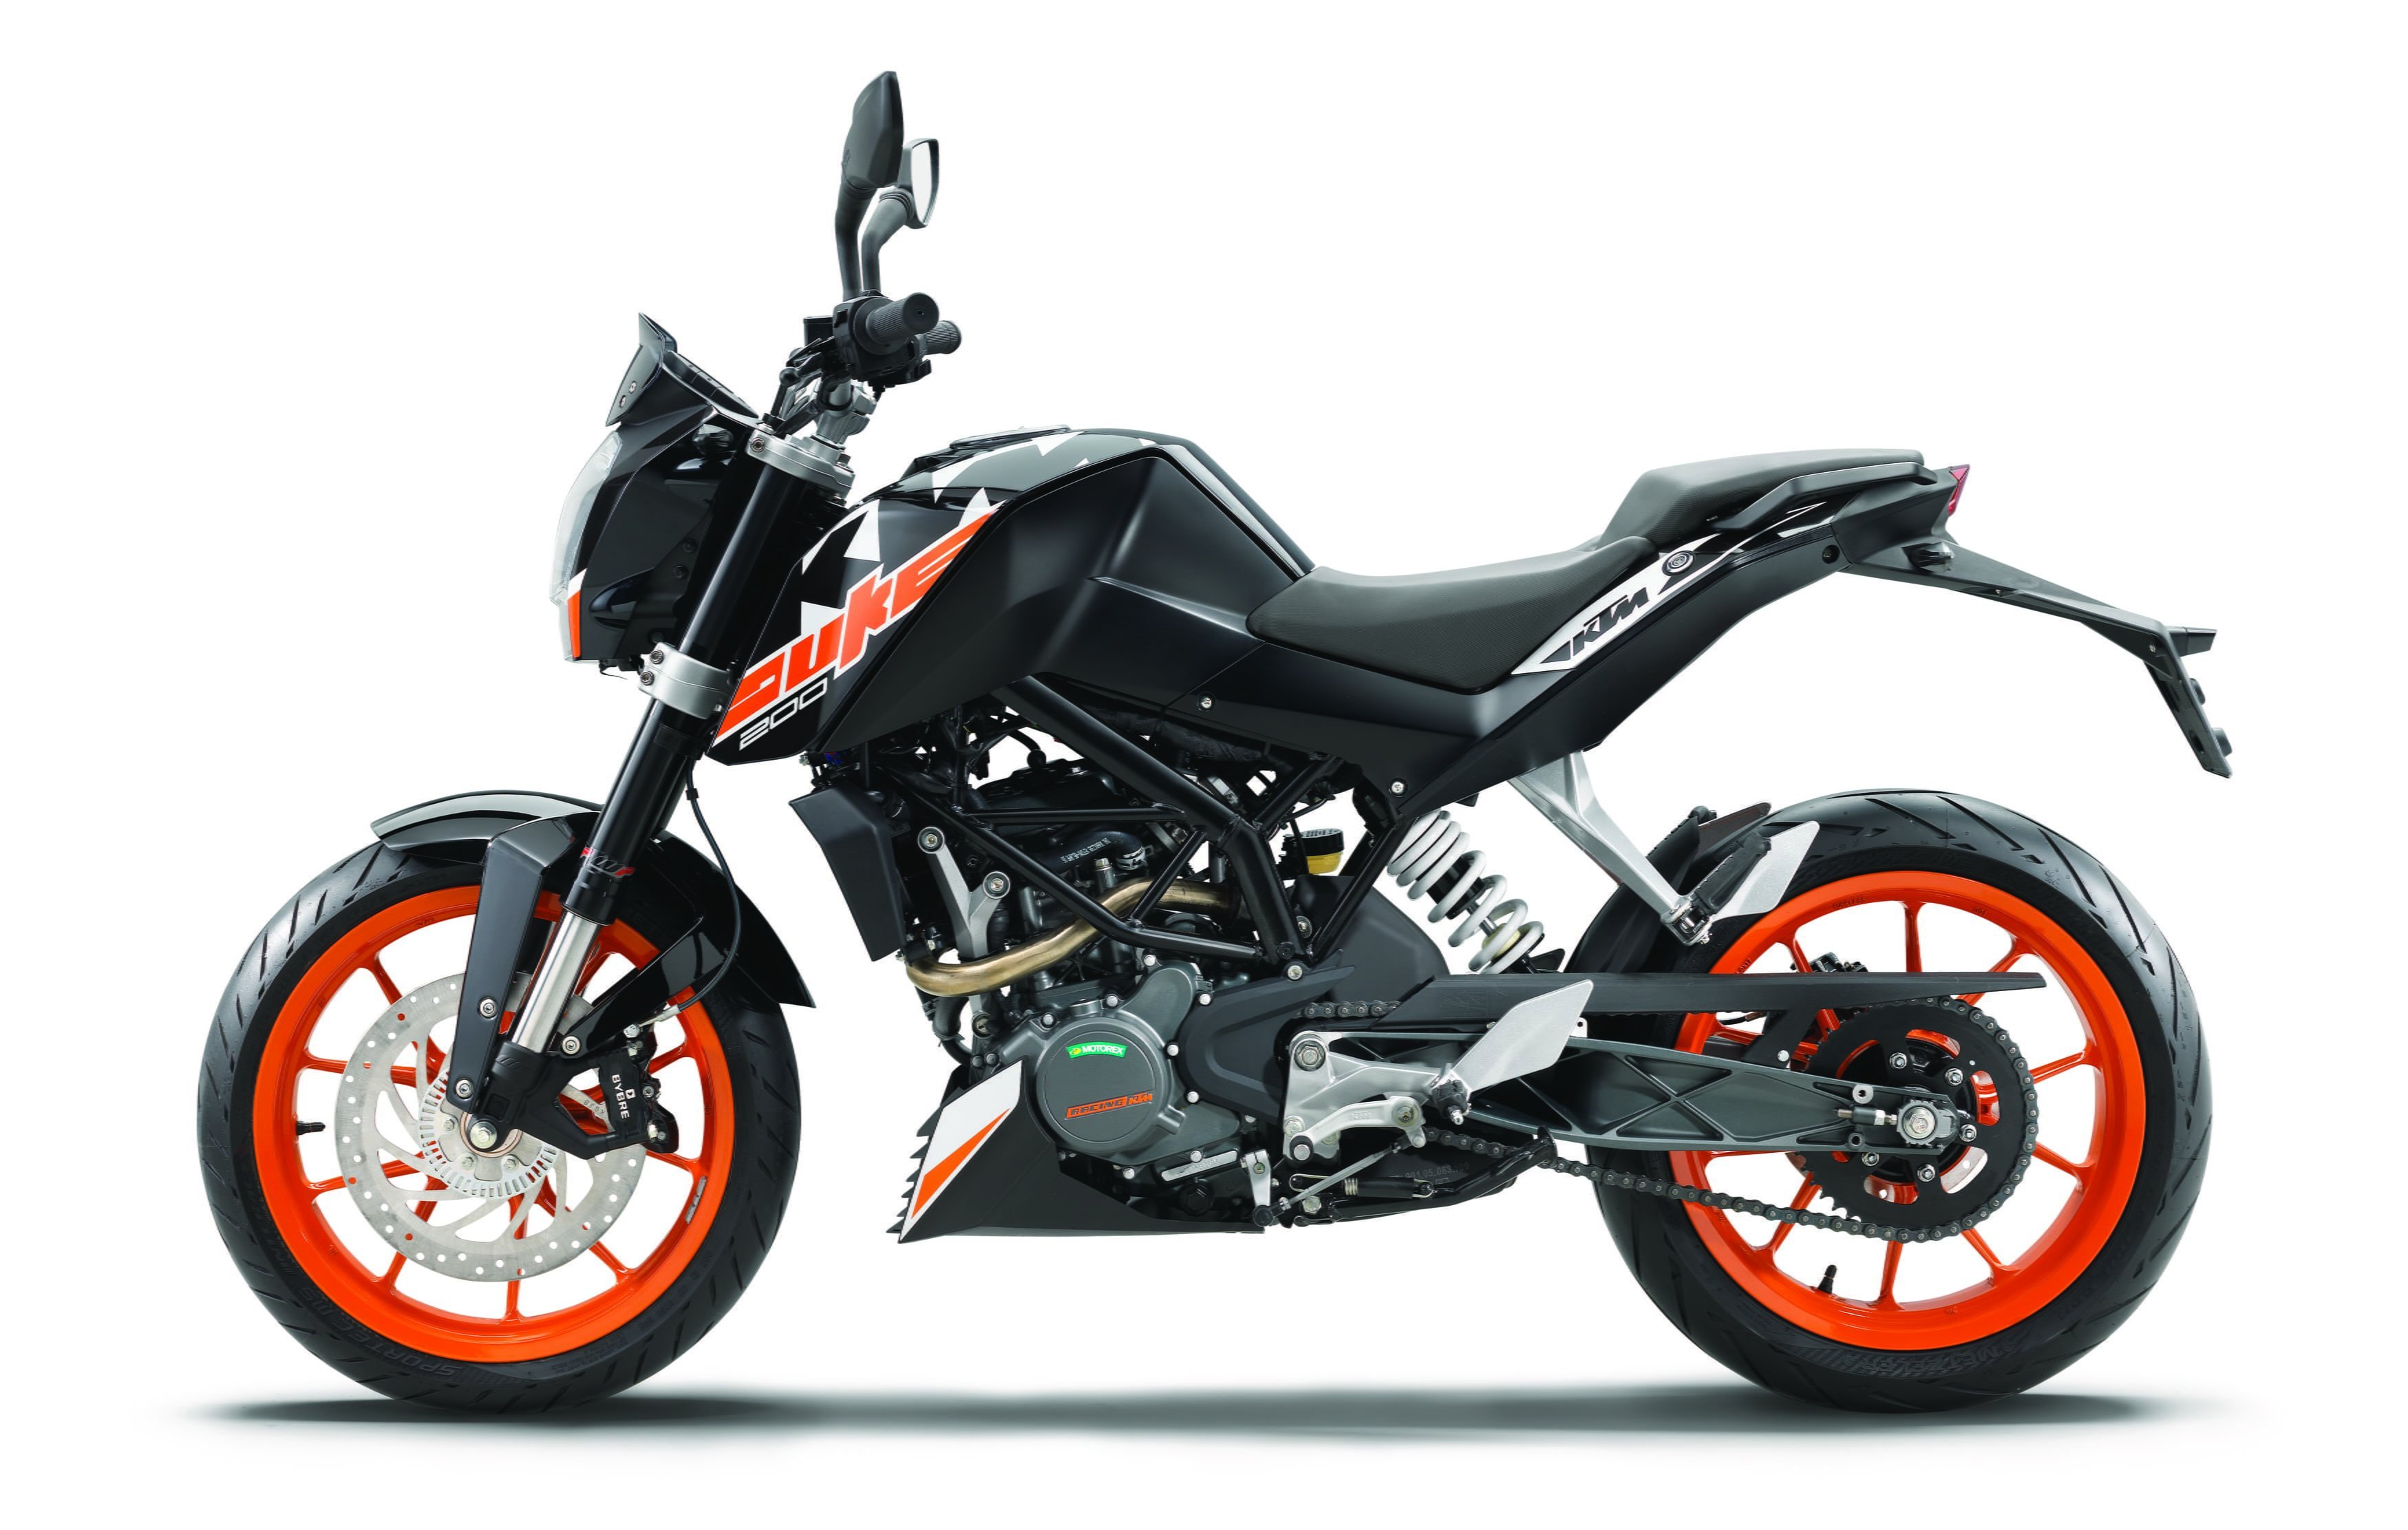 Ktm duke 200 abs launched in india priced at rs 1 60 lakh